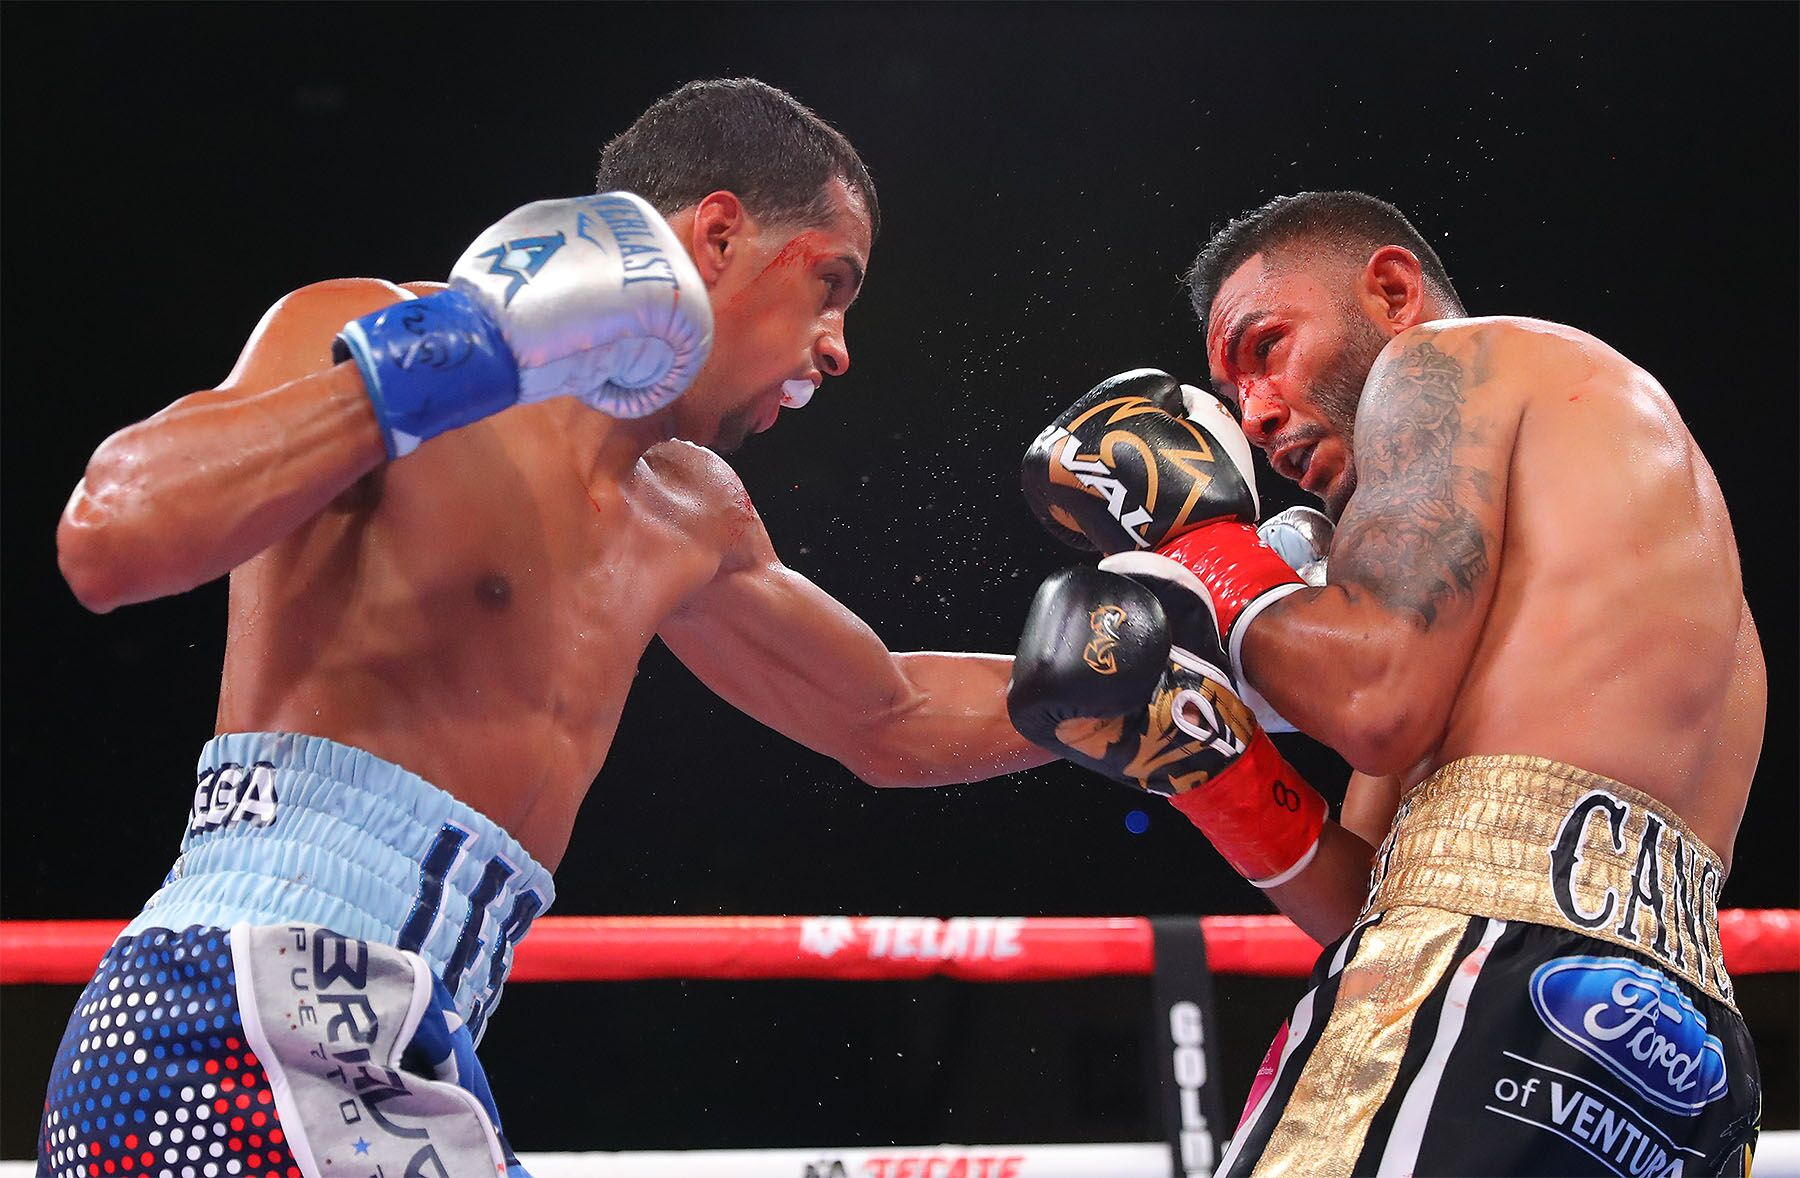 AF047CD7 7C05 4738 BD99 111B0DB29554 - Cancio reclaims world title over Machado by KO; Comeback finish from Soto shocks Acosta